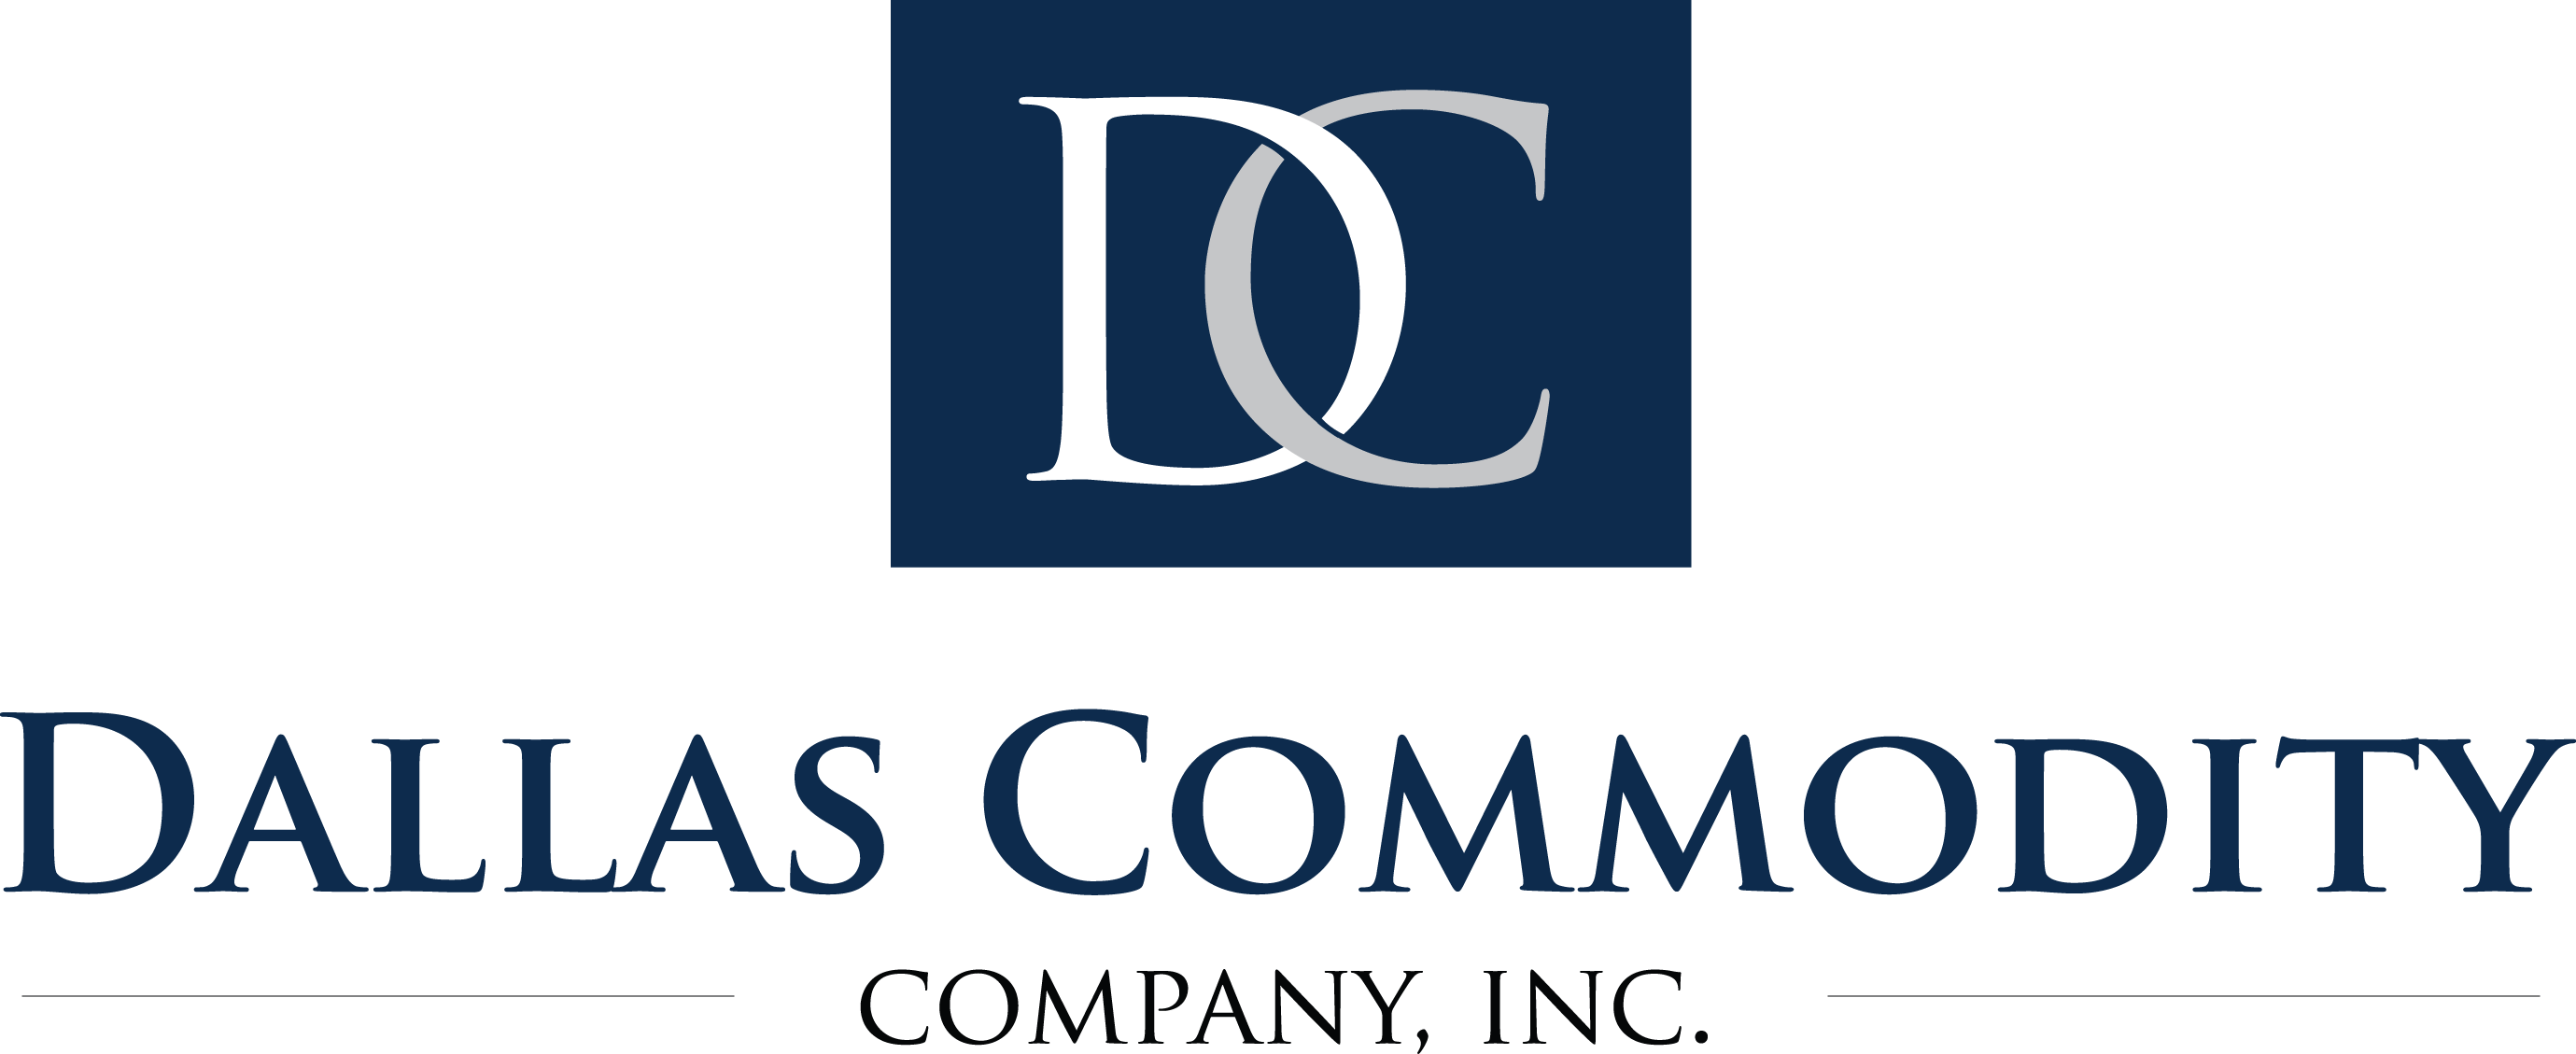 Dallas Commodity Company, Inc.